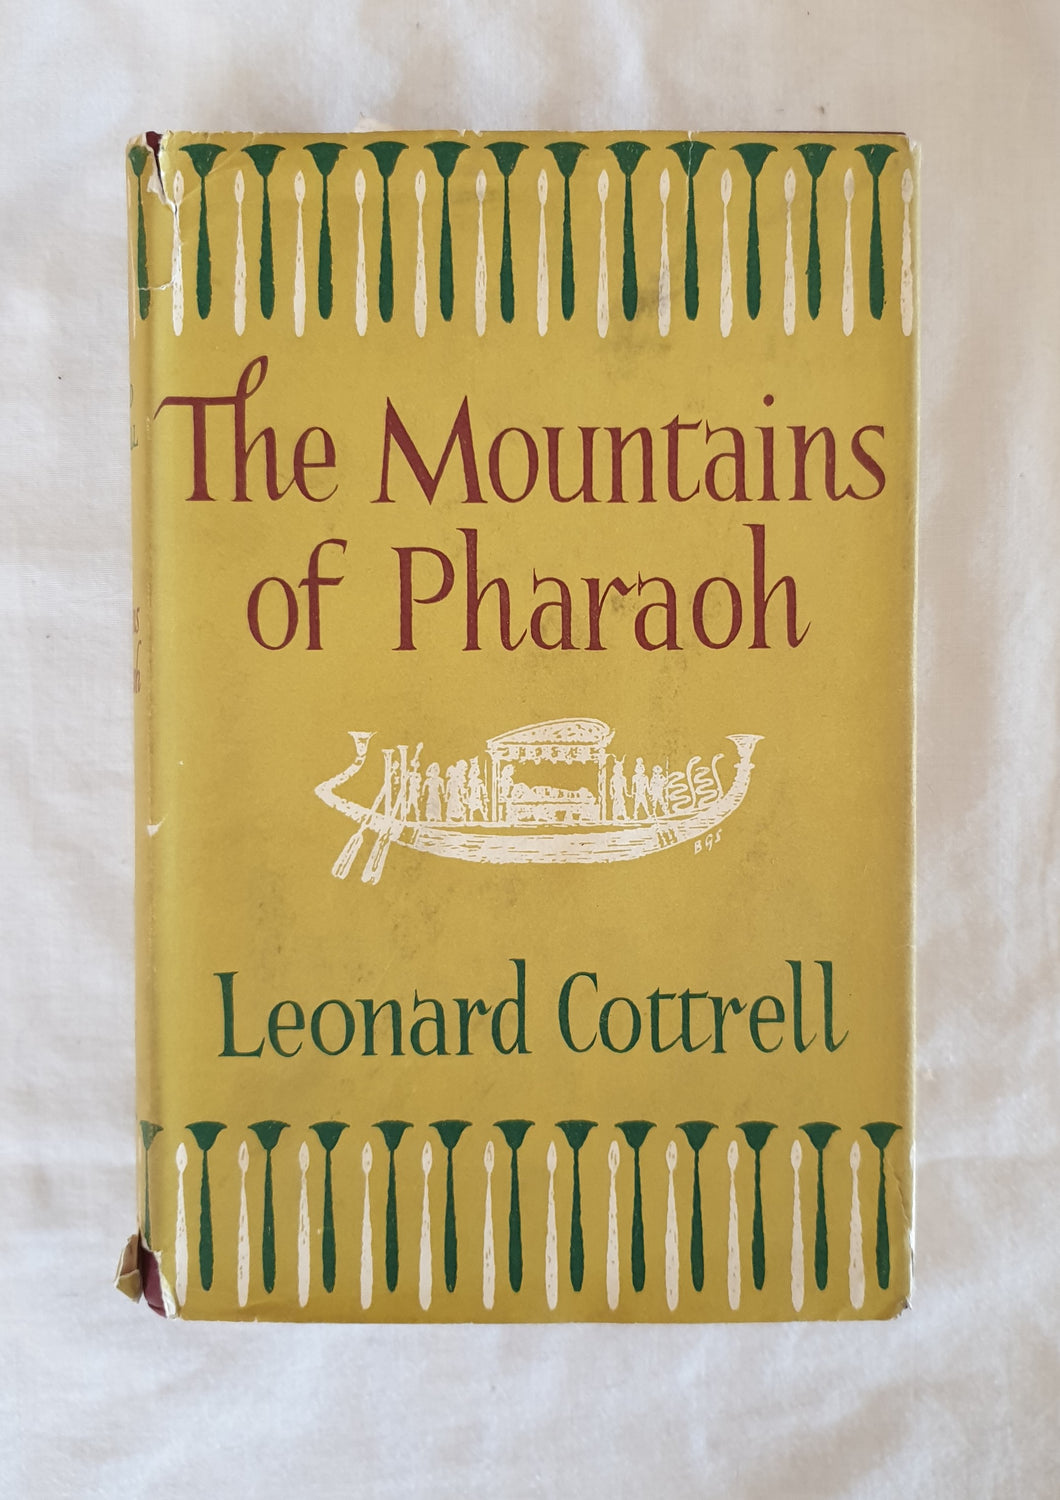 The Mountains of Pharaoh by Leonard Cottrell